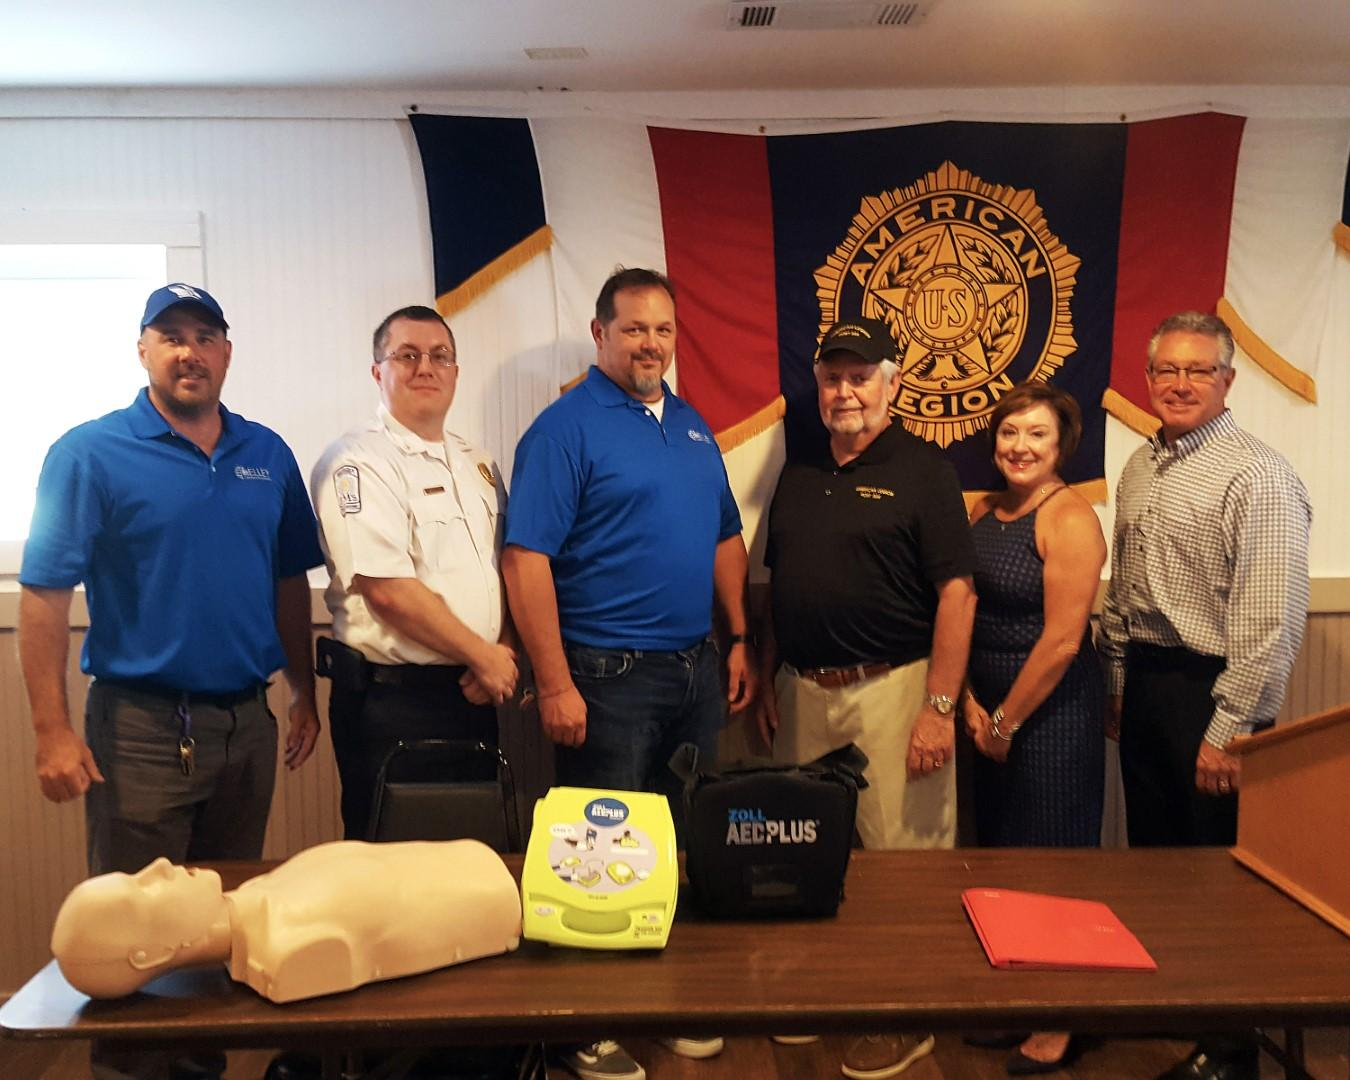 GFC Assists with Defibrillator Training At The Post on August 8, 2019